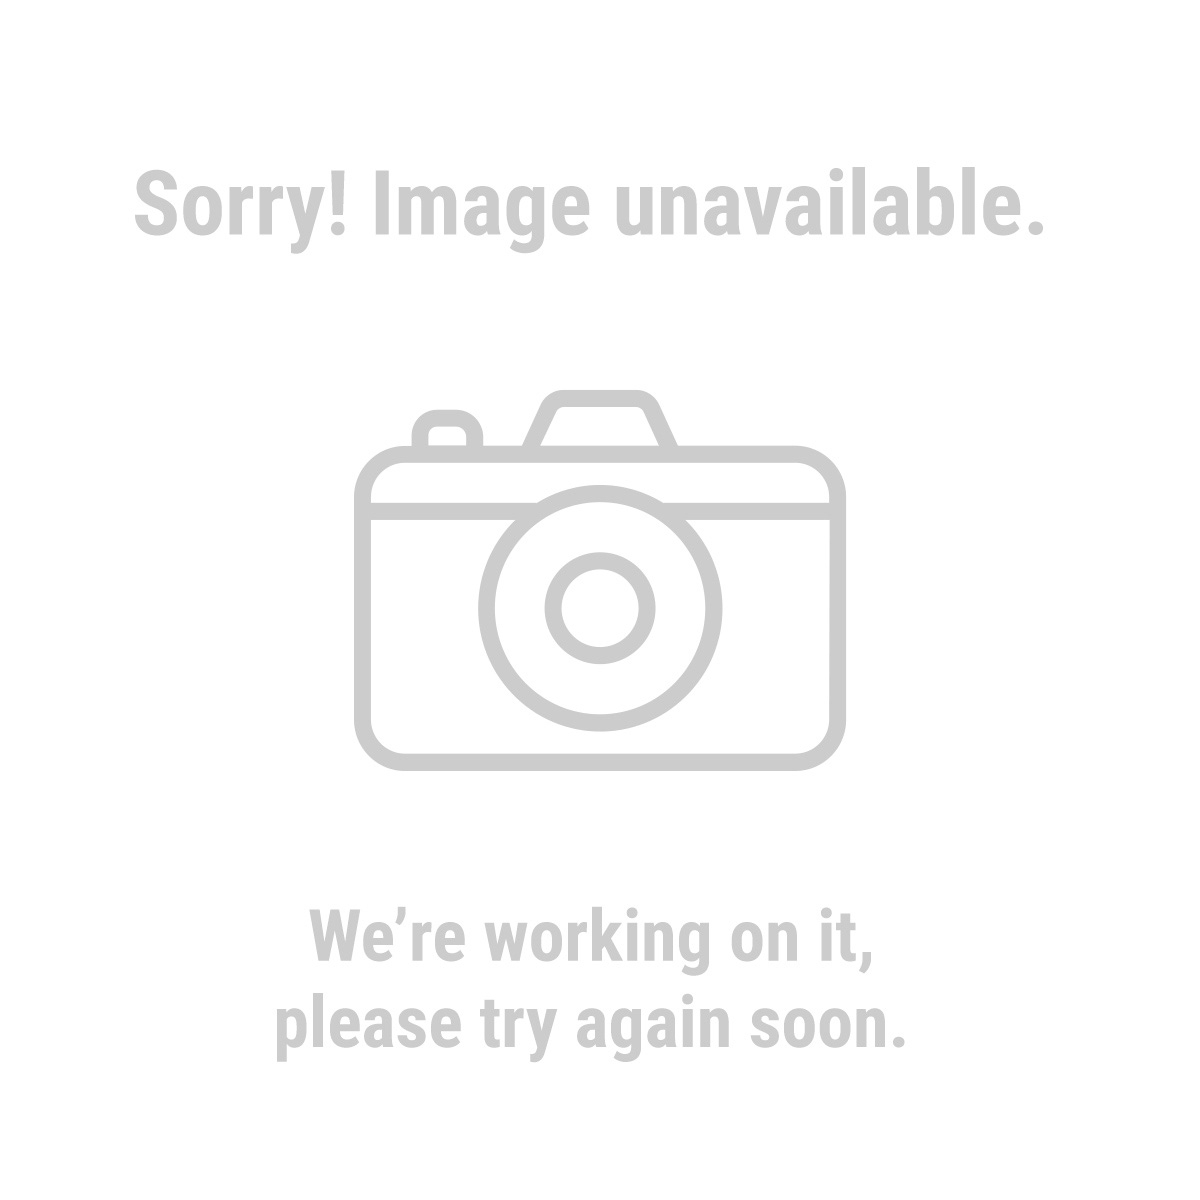 rc hobby store with Balsa Wood Airplane Puzzle 40691 on Rotary Encoder likewise 2041842357 besides Mrv Thumper Rtf 5 8ghz Fpv Racing Drone in addition Orangerx R615x Spektrum Jr Dsm2 Dsmx  patible 6ch 2 further Product.